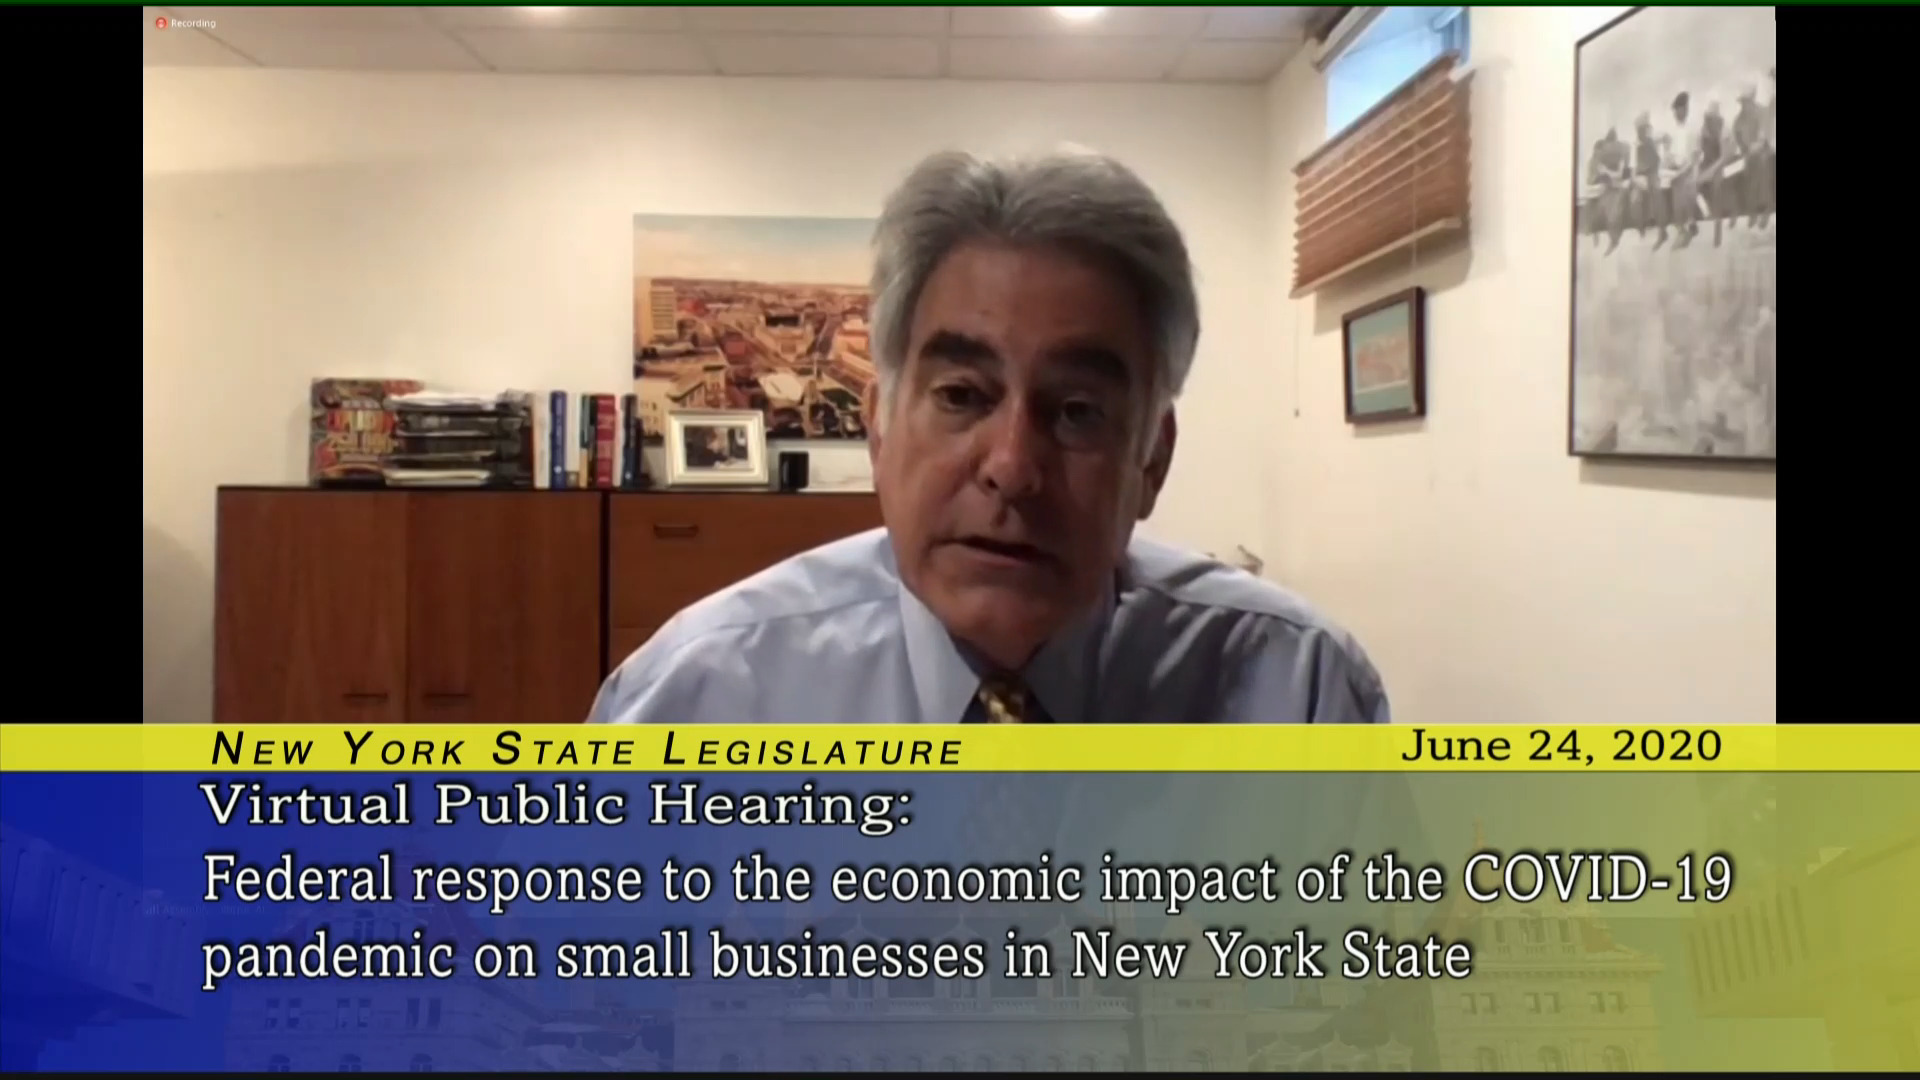 Public Hearing on Federal Response to COVID-19 Impact on NYC Small Business